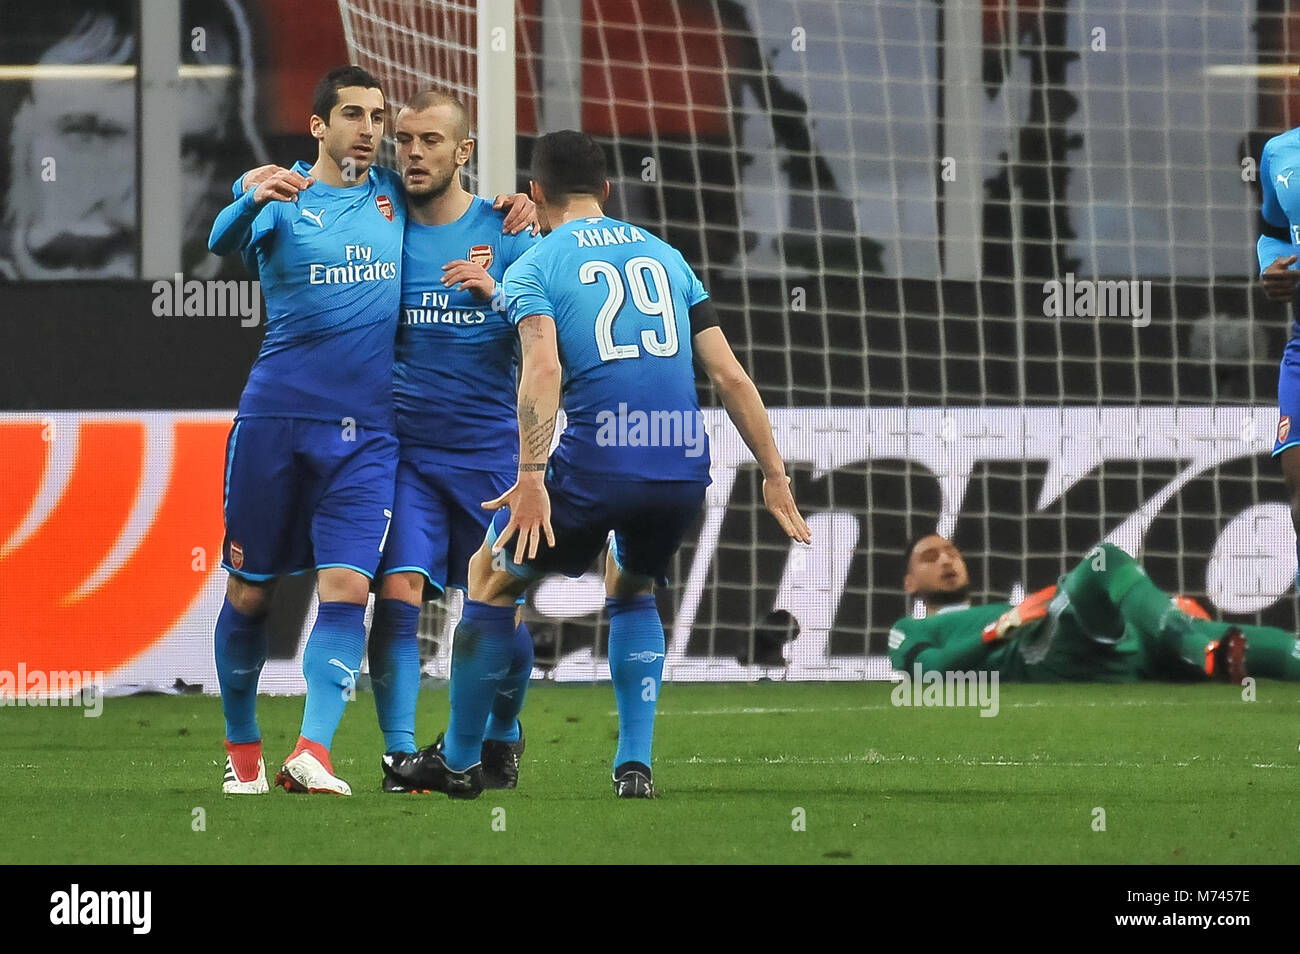 Milan, Italy. 8th March, 2018. during the match UEFA Europa League between AC Milan and Arsenal FCat  Meazza Stadium. Stock Photo